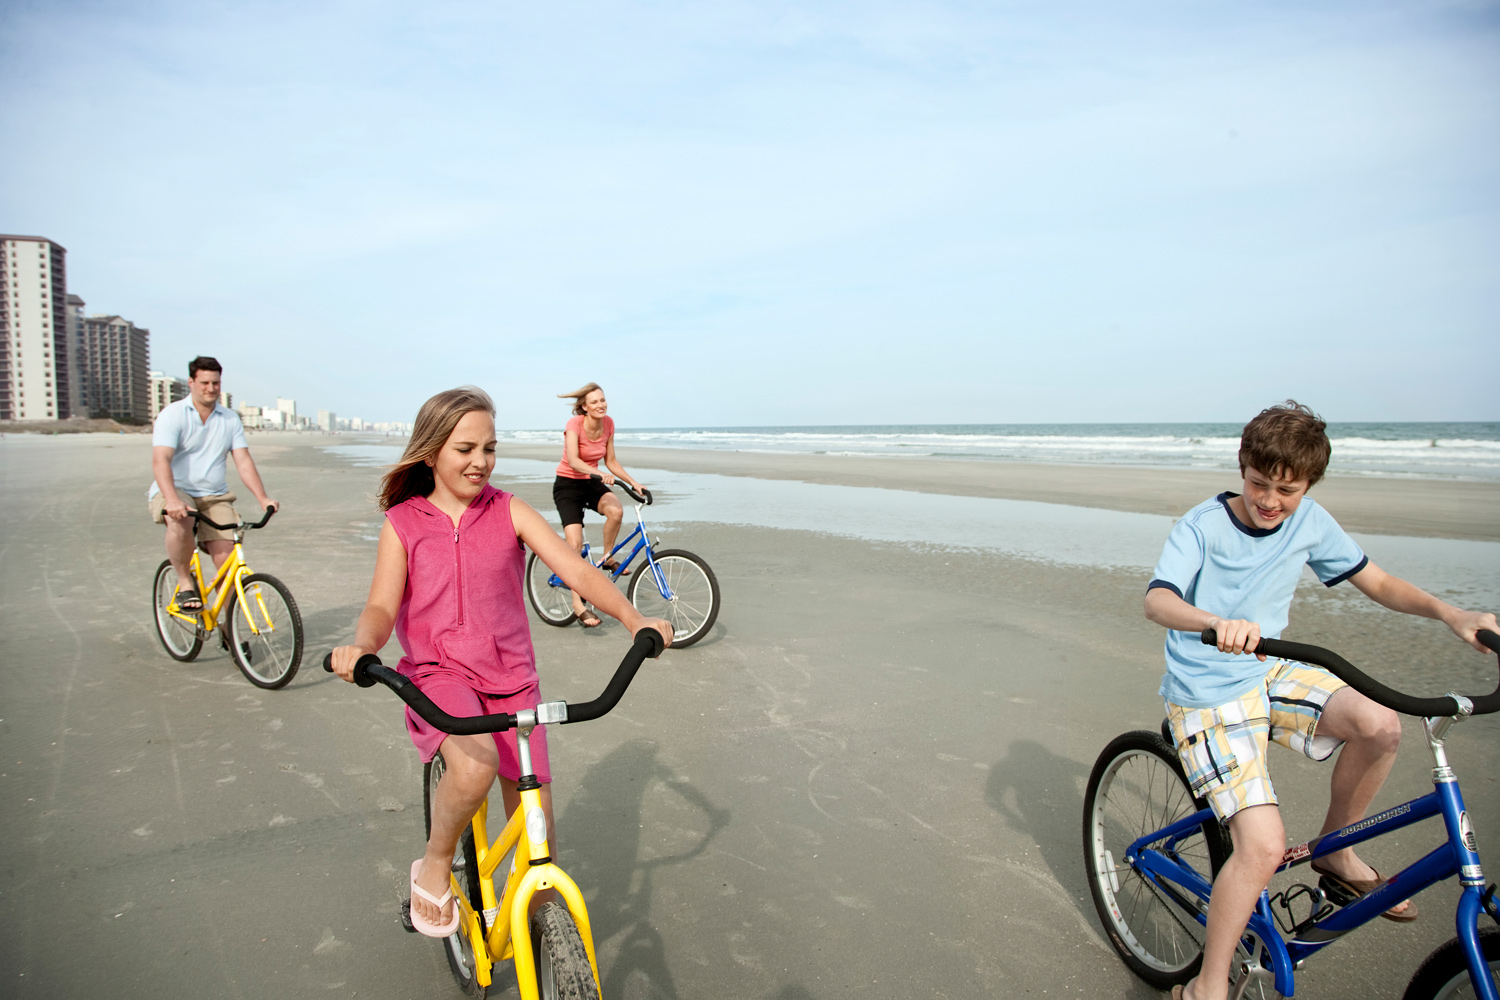 Family Bike Riding on the Beach in the city of Myrtle Beach